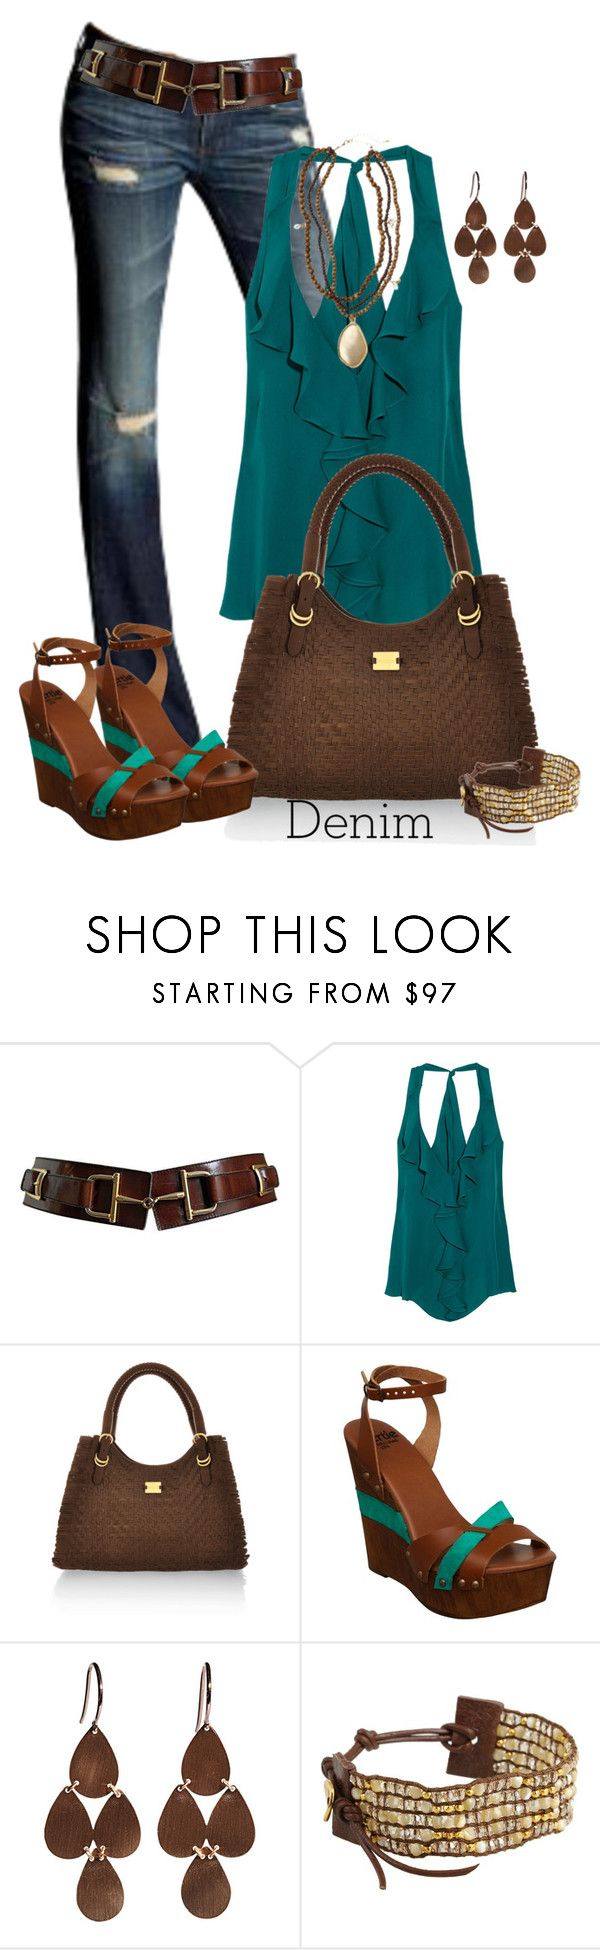 """Untitled #304"" by johnna-cameron ❤ liked on Polyvore featuring AG Adriano Goldschmied, CÉLINE, Haute Hippie, Modalu, Bertie, Irene Neuwirth, Calypso St. Barth, Chan Luu and polyvoreeditorial"